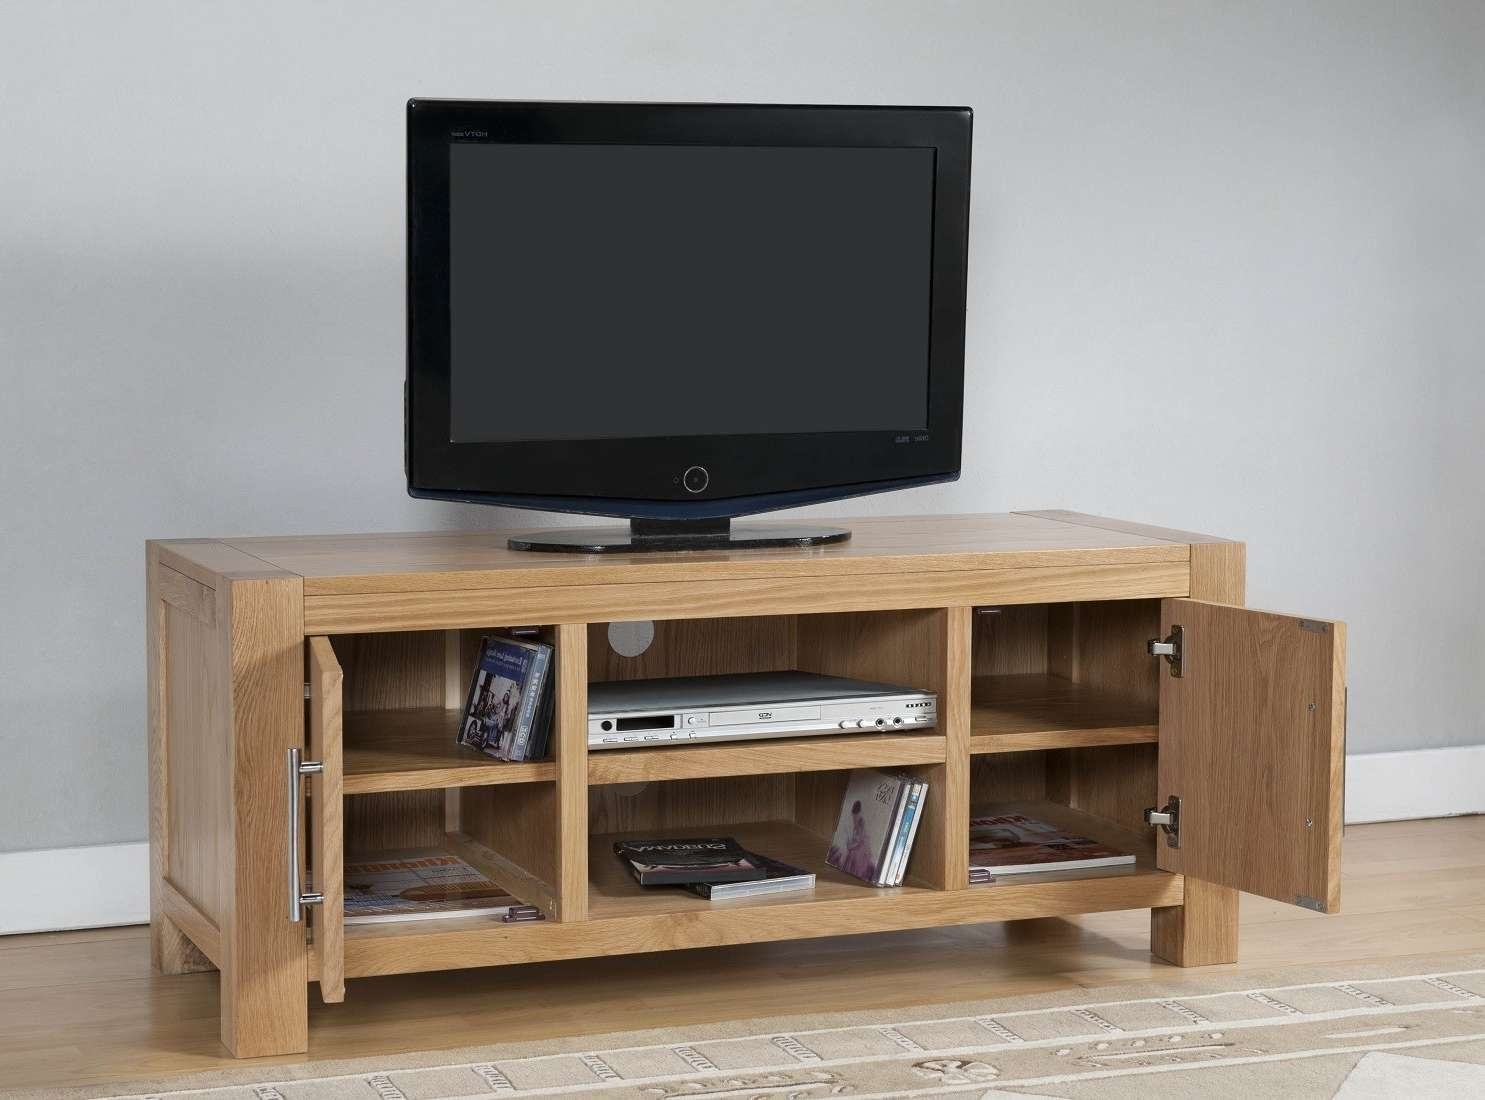 Aylesbury Contemporary Light Oak Large Tv Unit | Oak Furniture Uk Pertaining To Contemporary Oak Tv Cabinets (View 7 of 20)